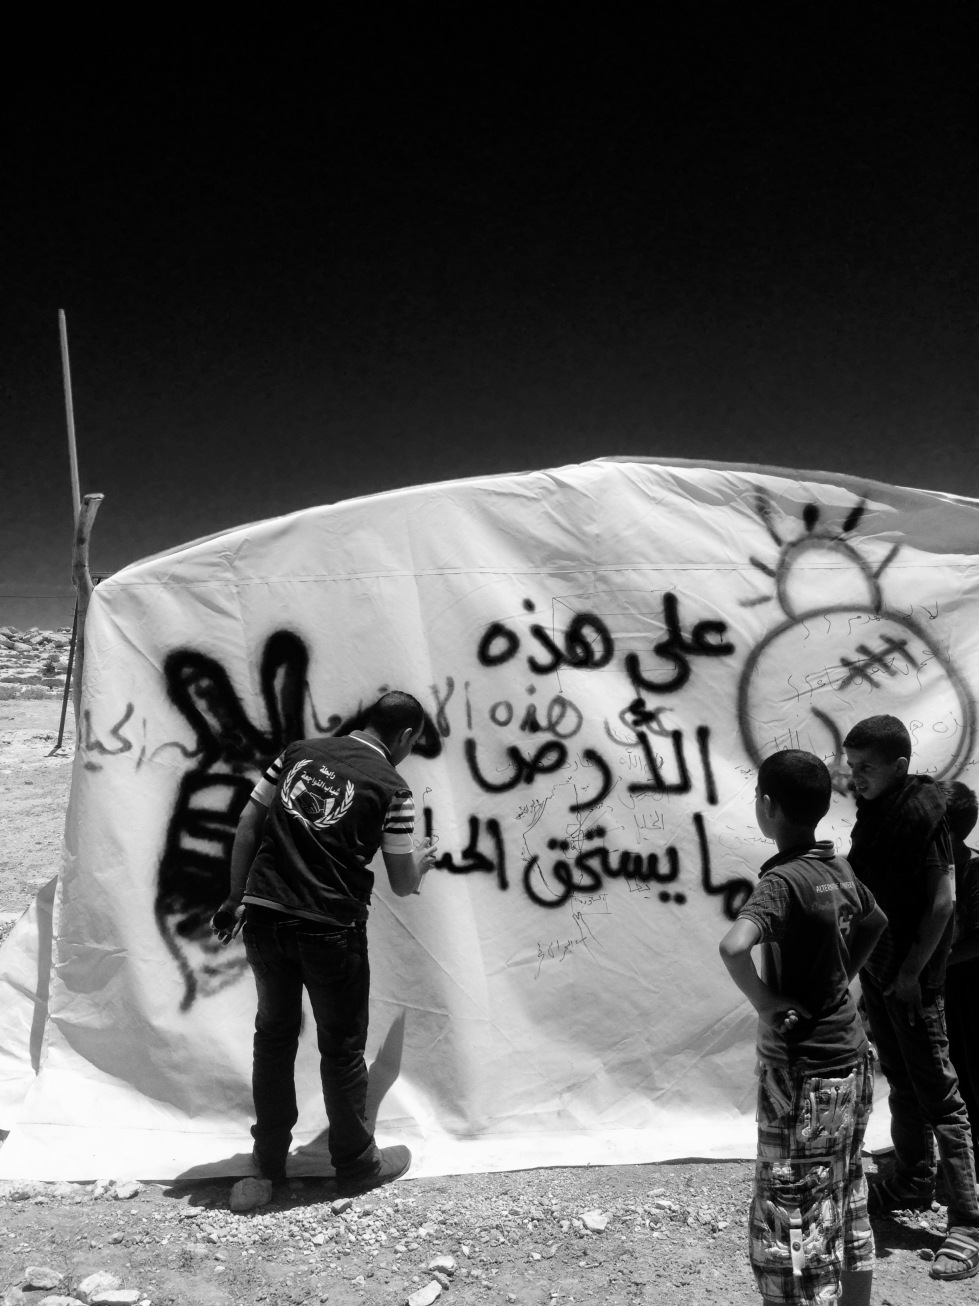 The first part of the action was renewing the messages on the tents, including quotes from Mahmoud Darwish